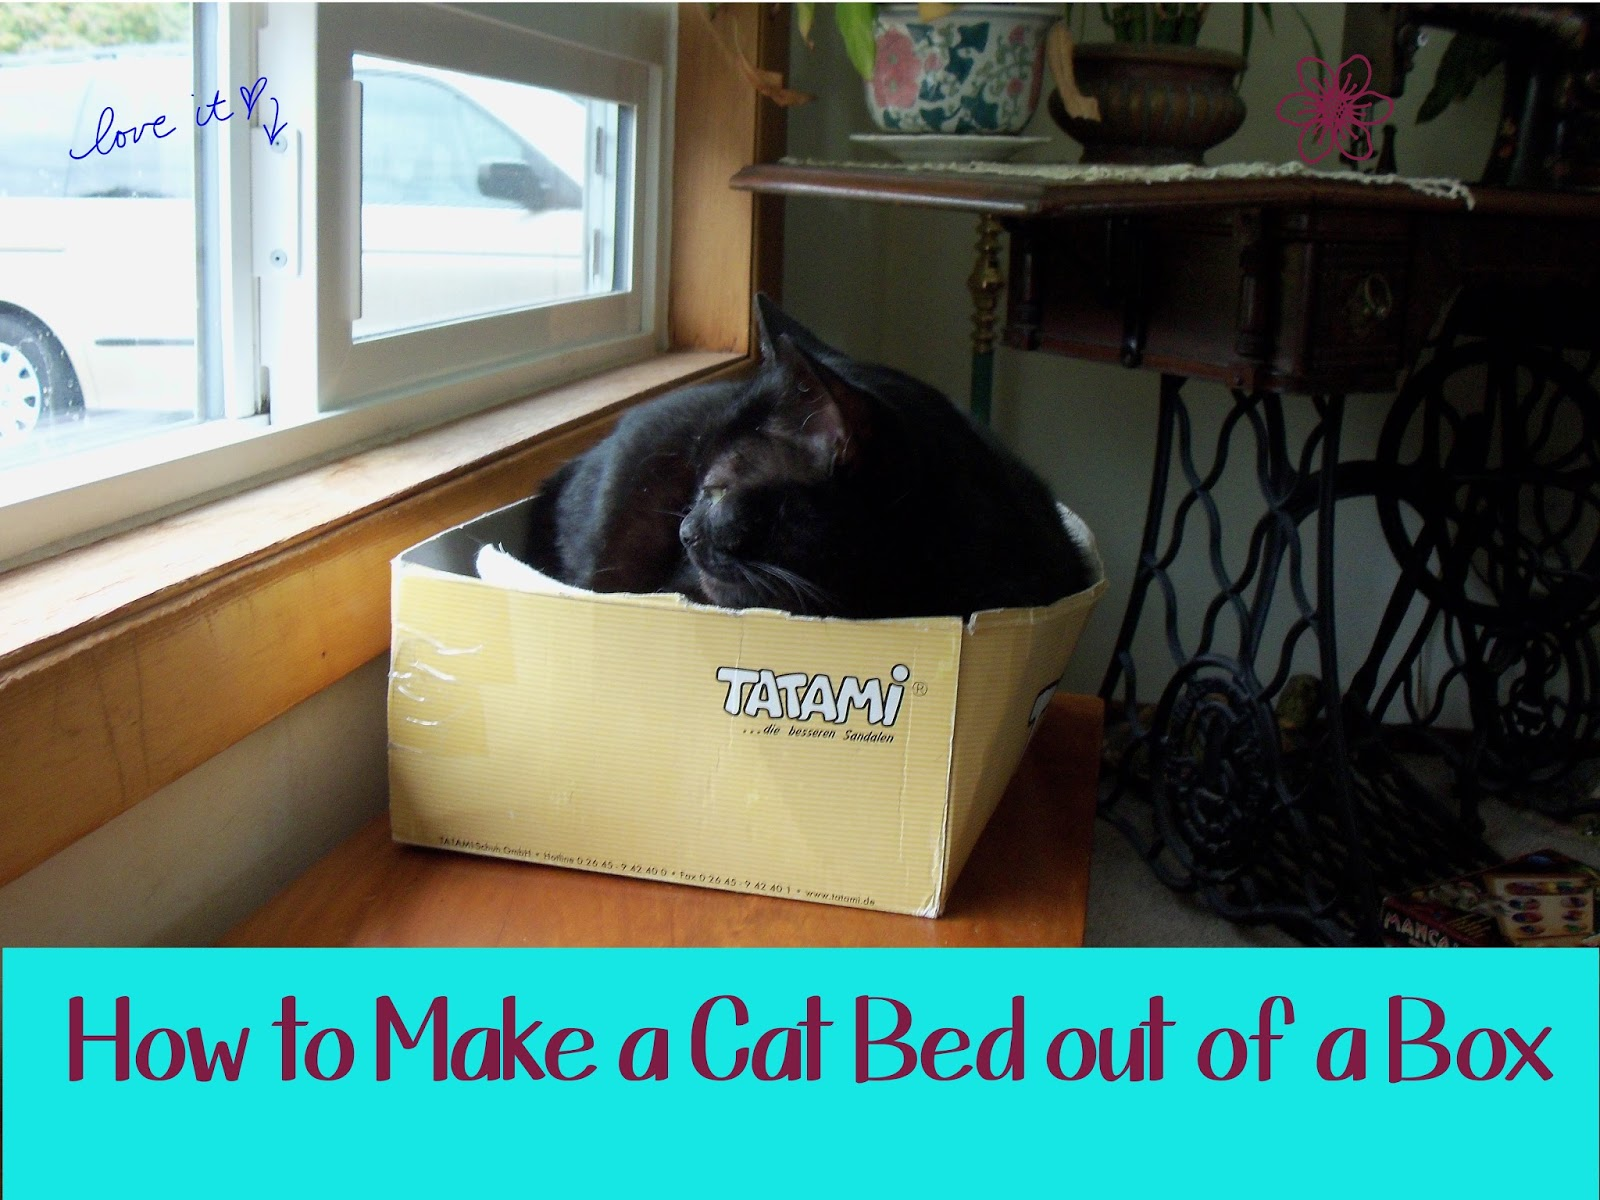 Homeschool smarts how to make a cat bed out of a box for How to make a cat toy out of a box